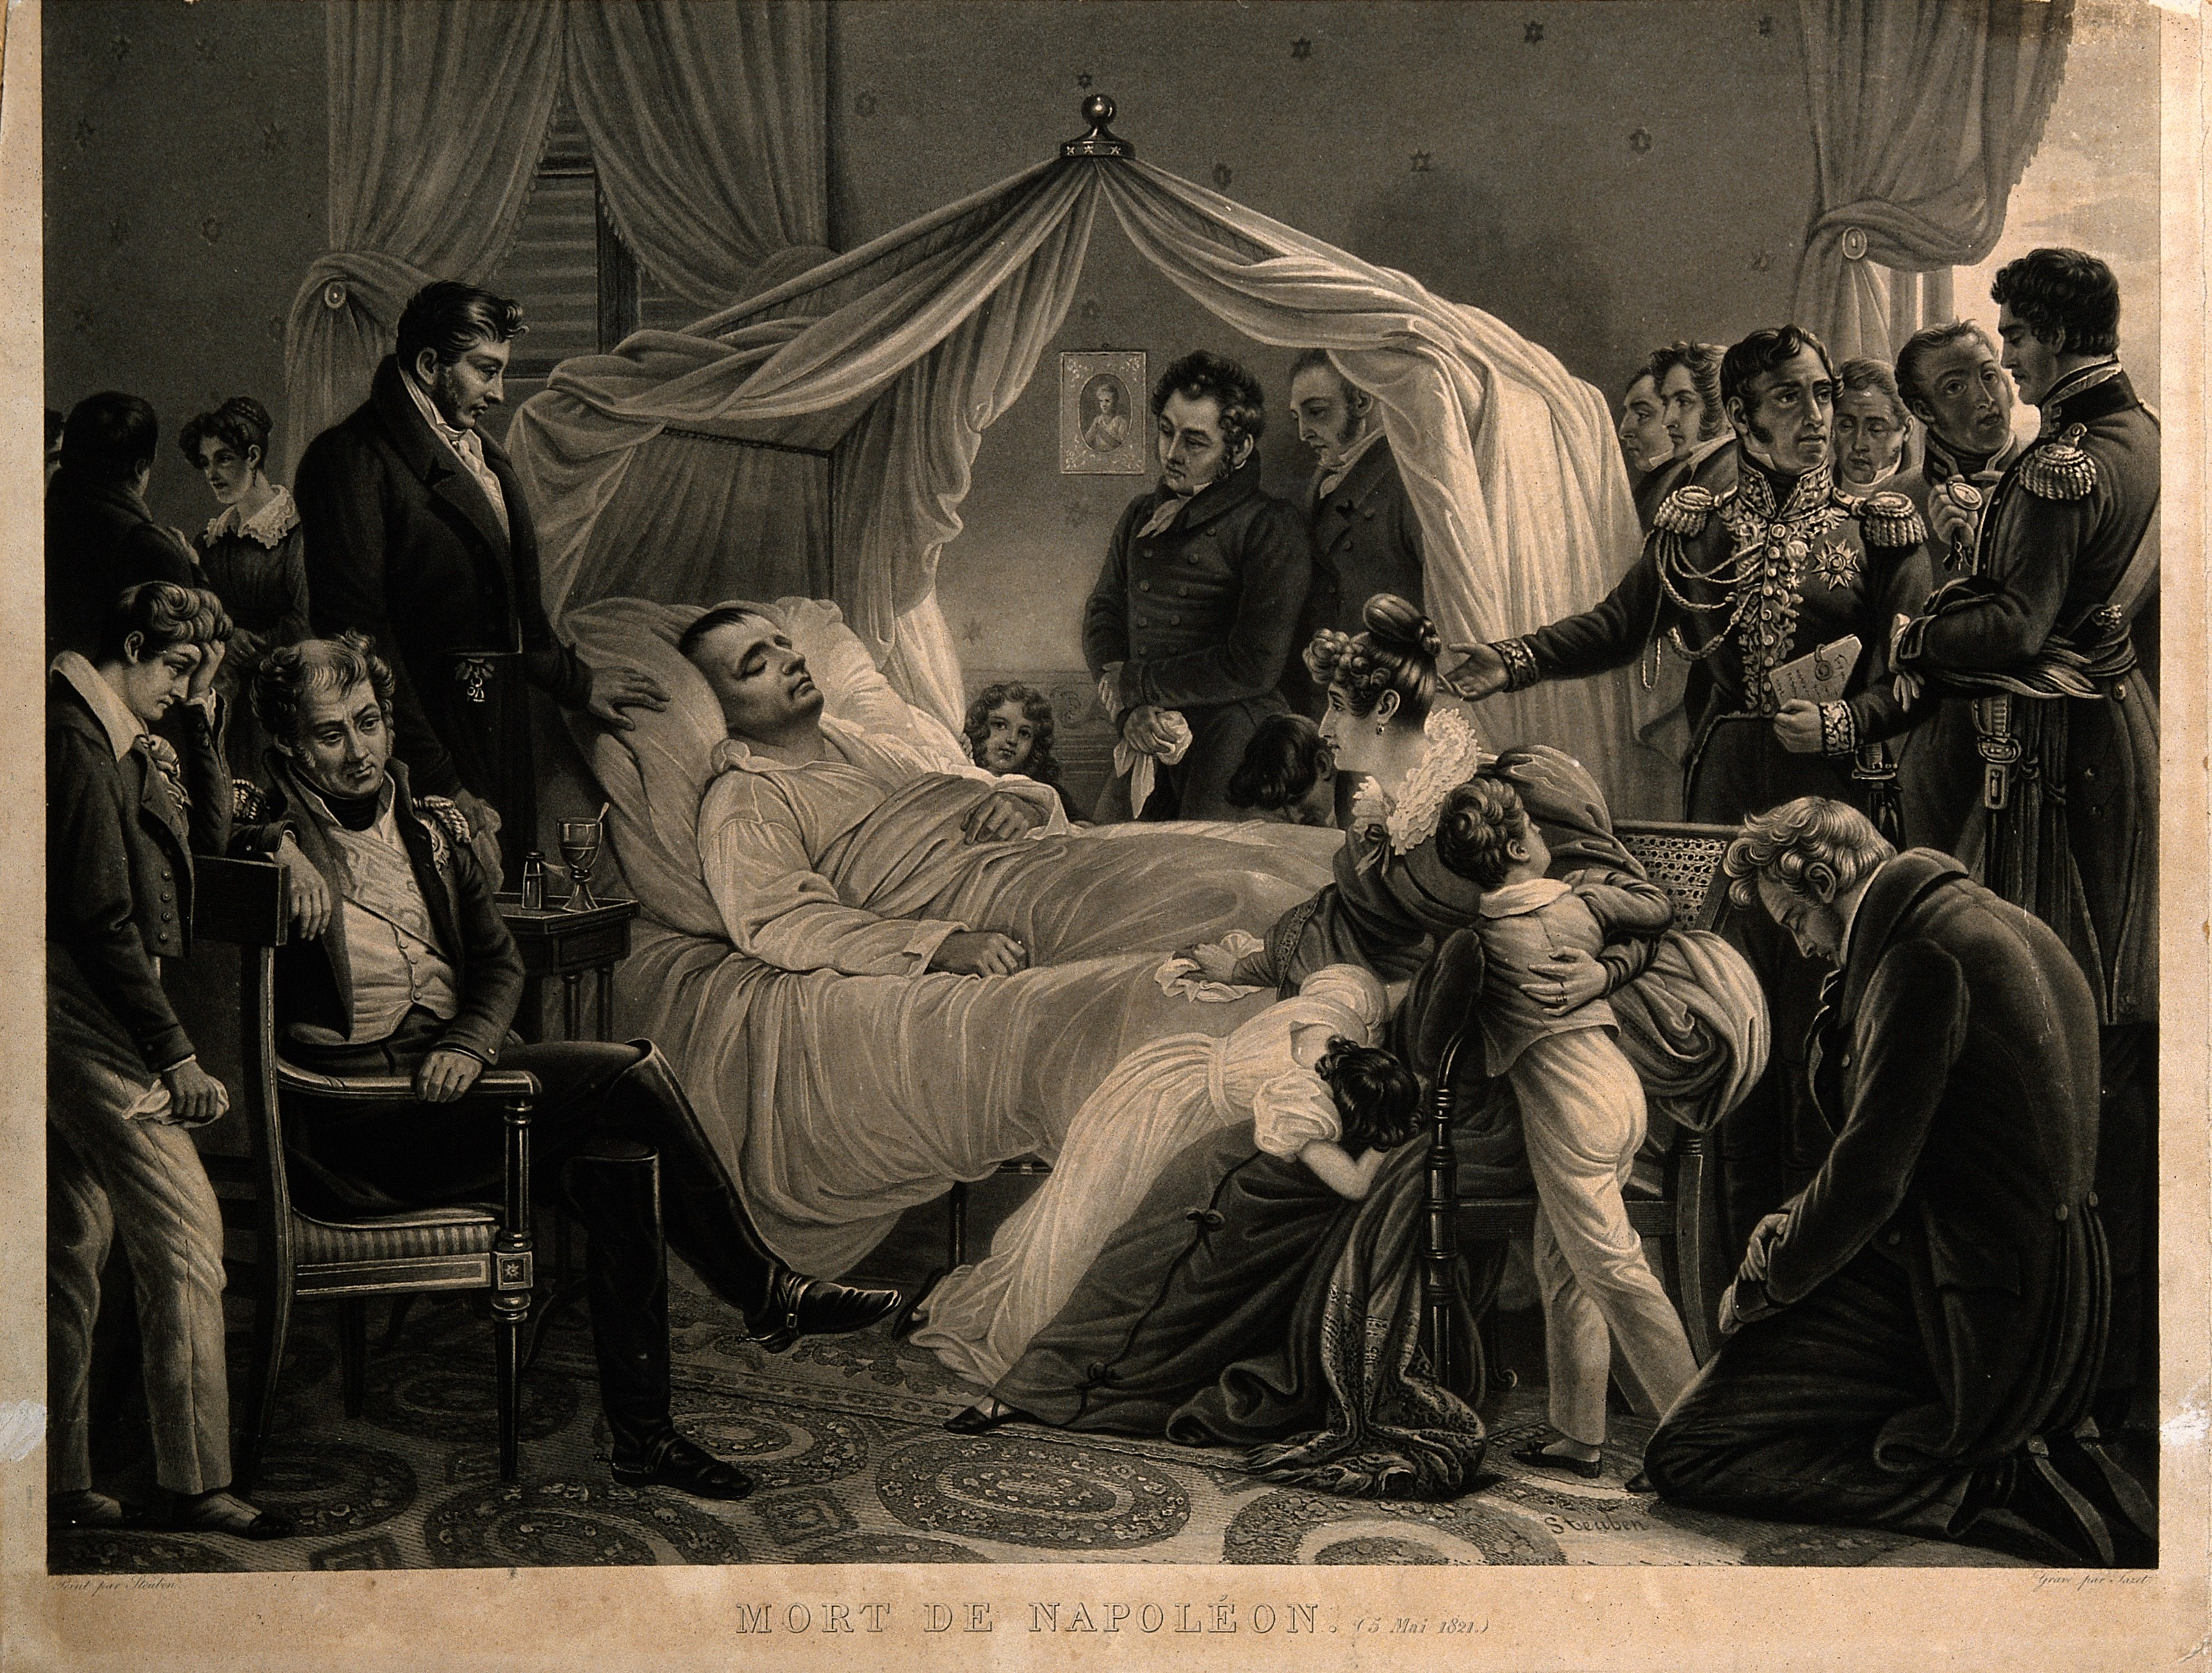 Napoleon on his death bed while in exile on St. Helena.  HIs death ended any plans Nicholas Girod had for rescuing him and bringing him to New Orleans.